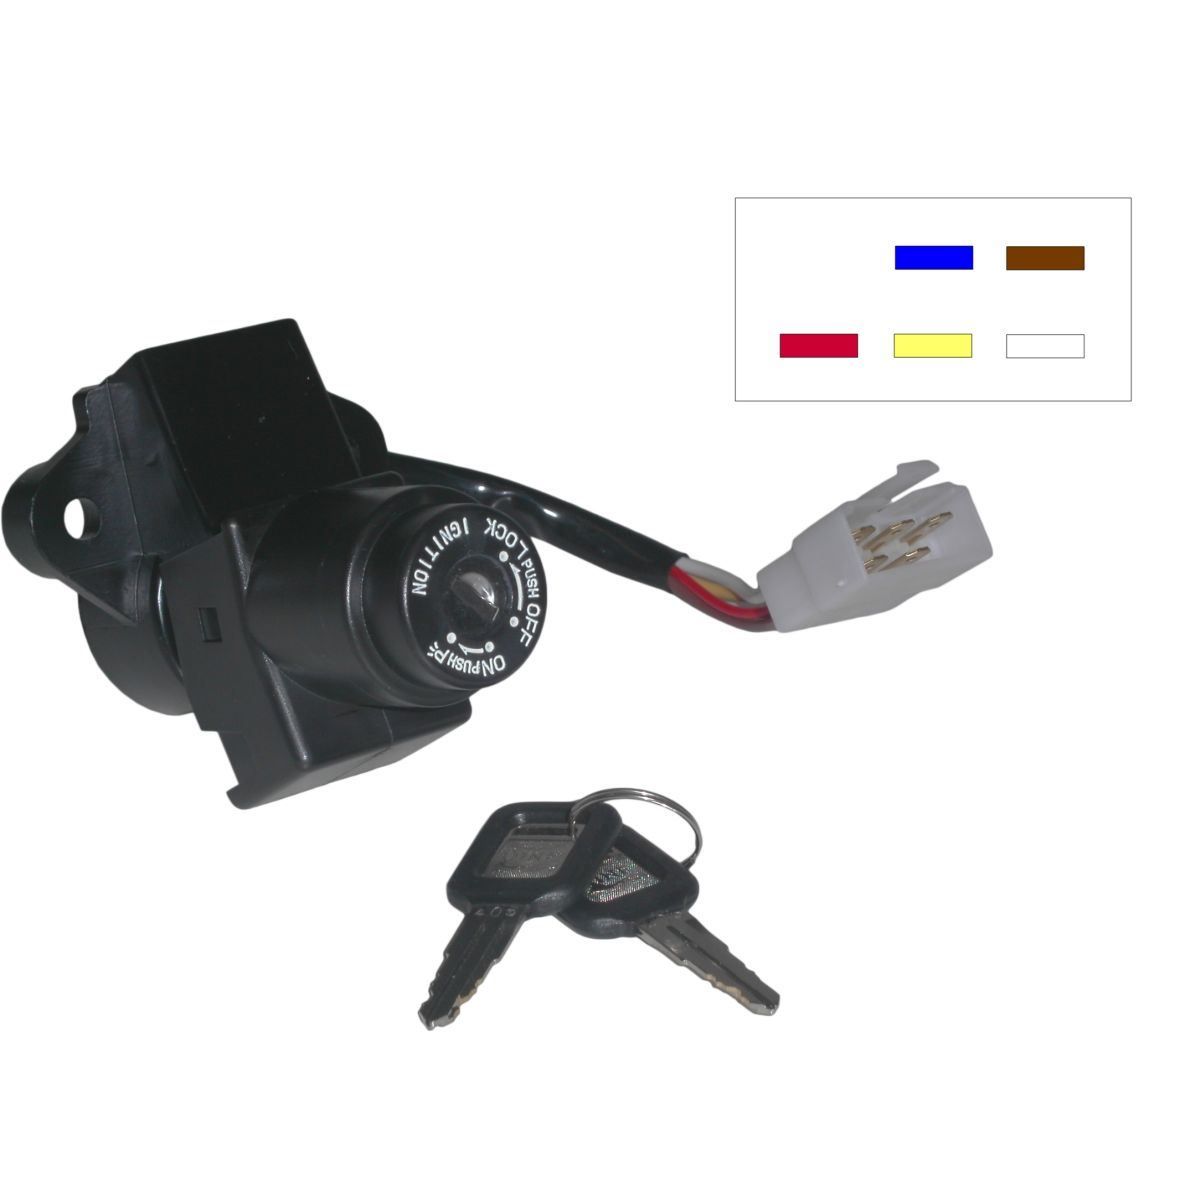 Image is loading Ignition-Switch-for-1982-Kawasaki-K-Z-750-N1-